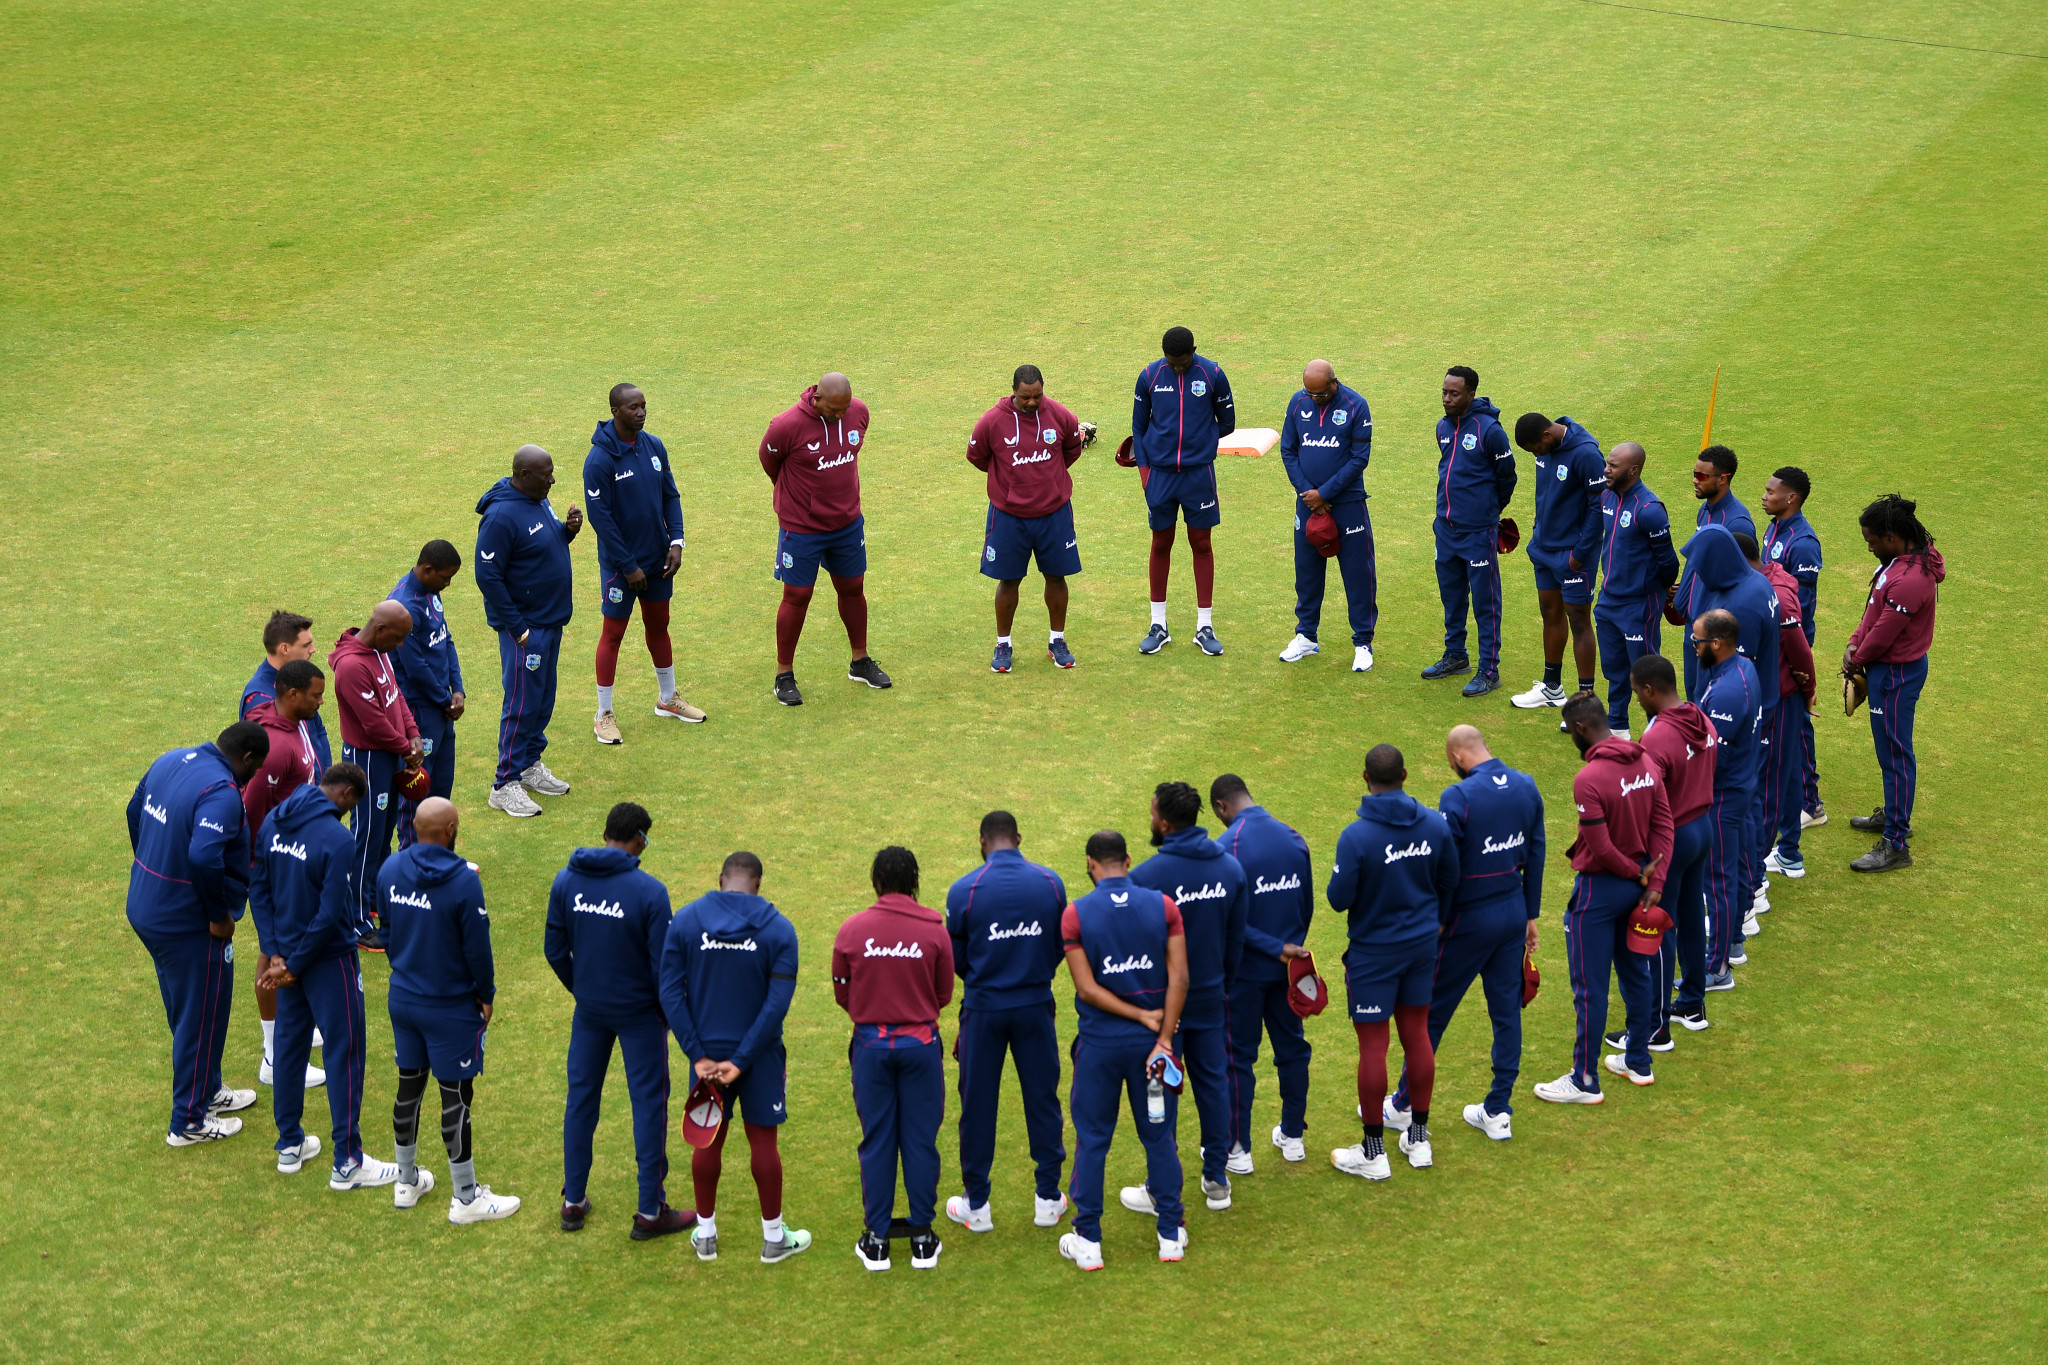 West Indies players and staff held a moment of silence before a warm-up match in honour of Sir Everton Weekes ©Getty Images